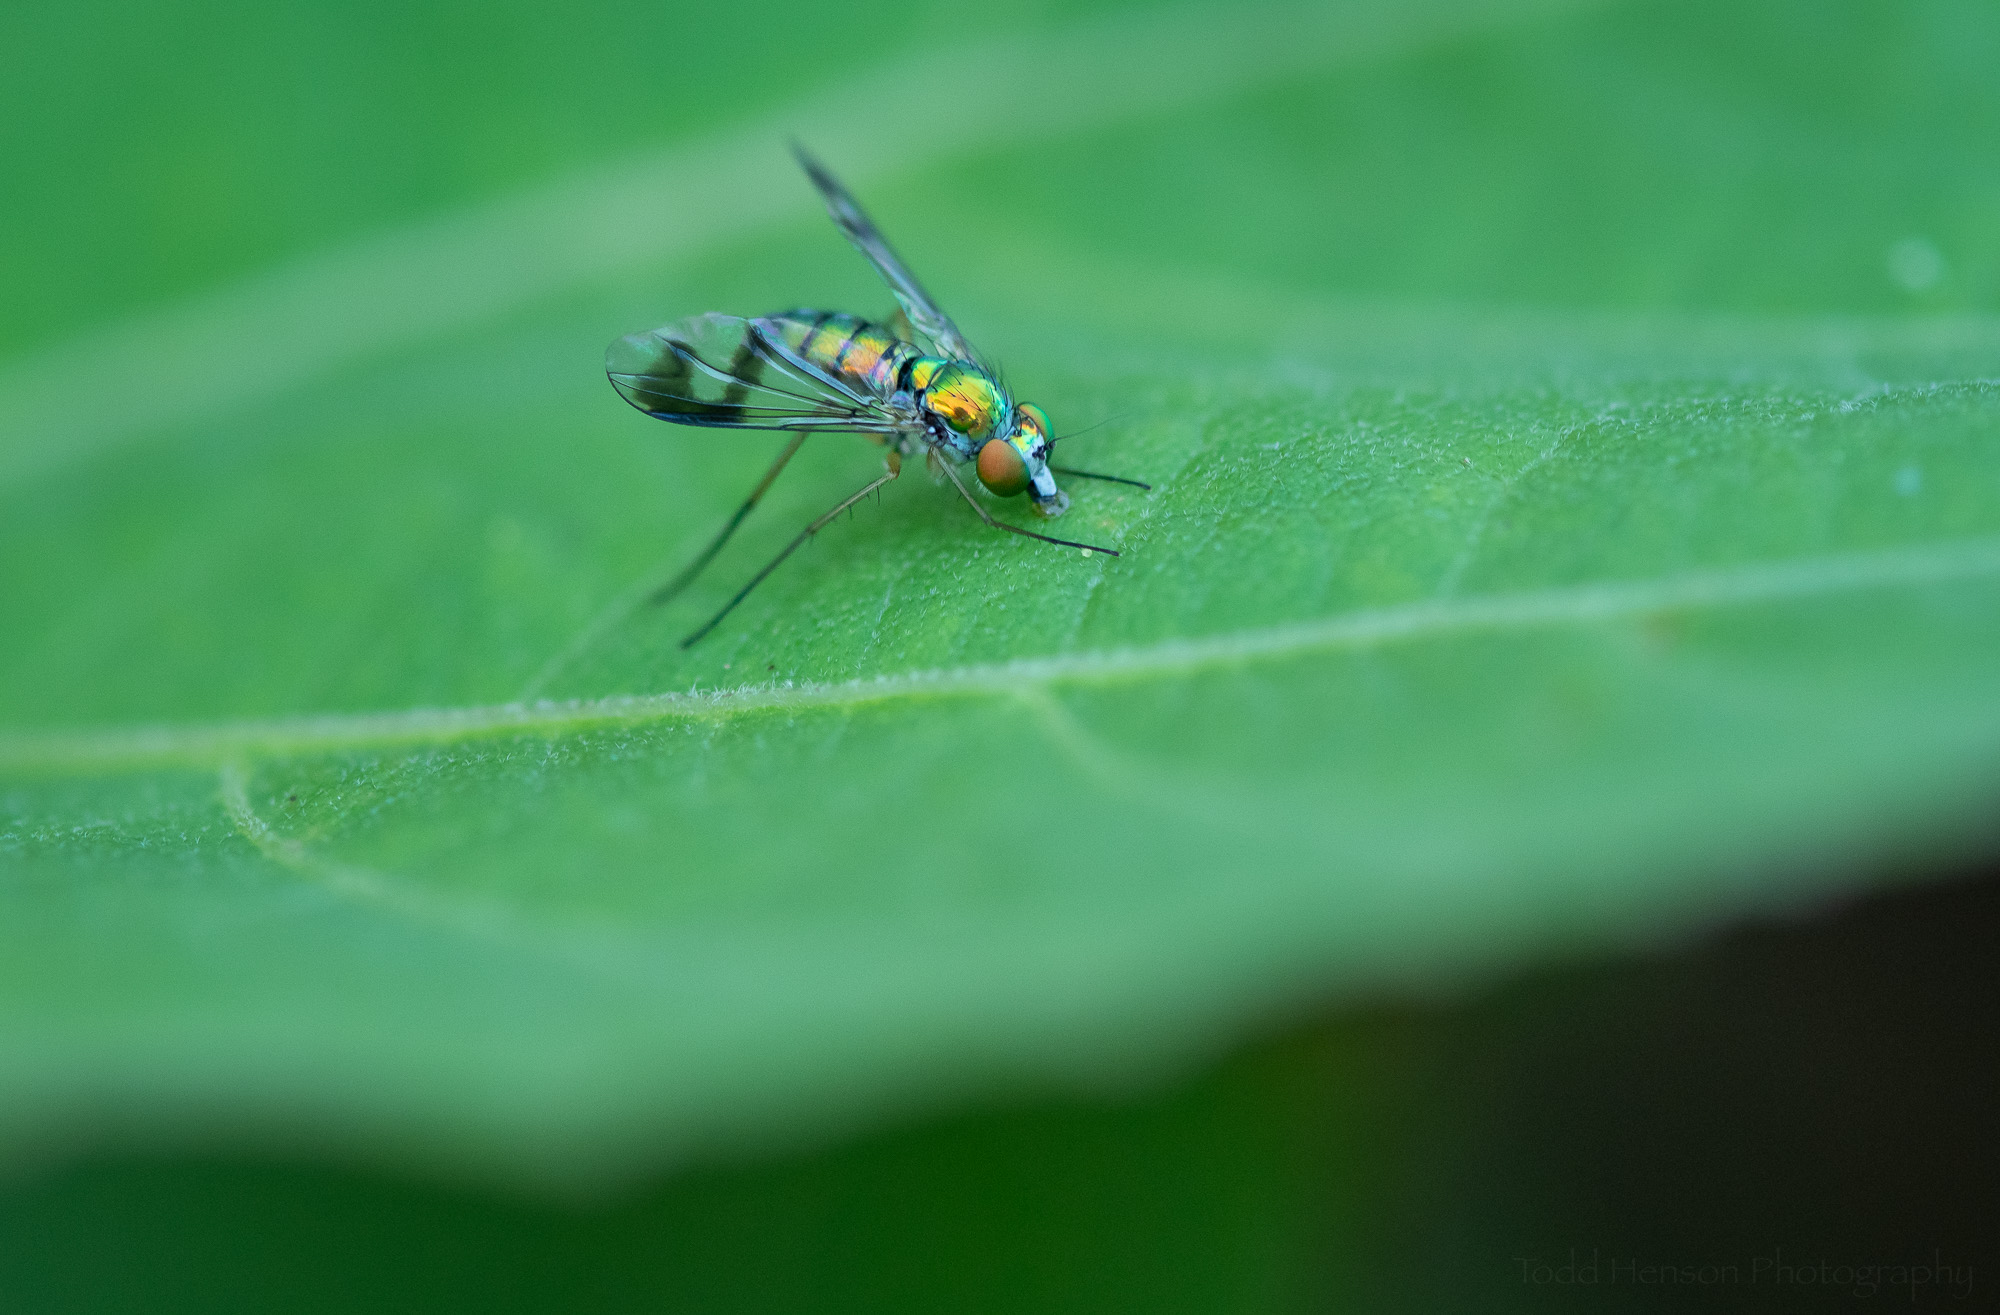 A Long-legged Fly on an hibiscus leaf.